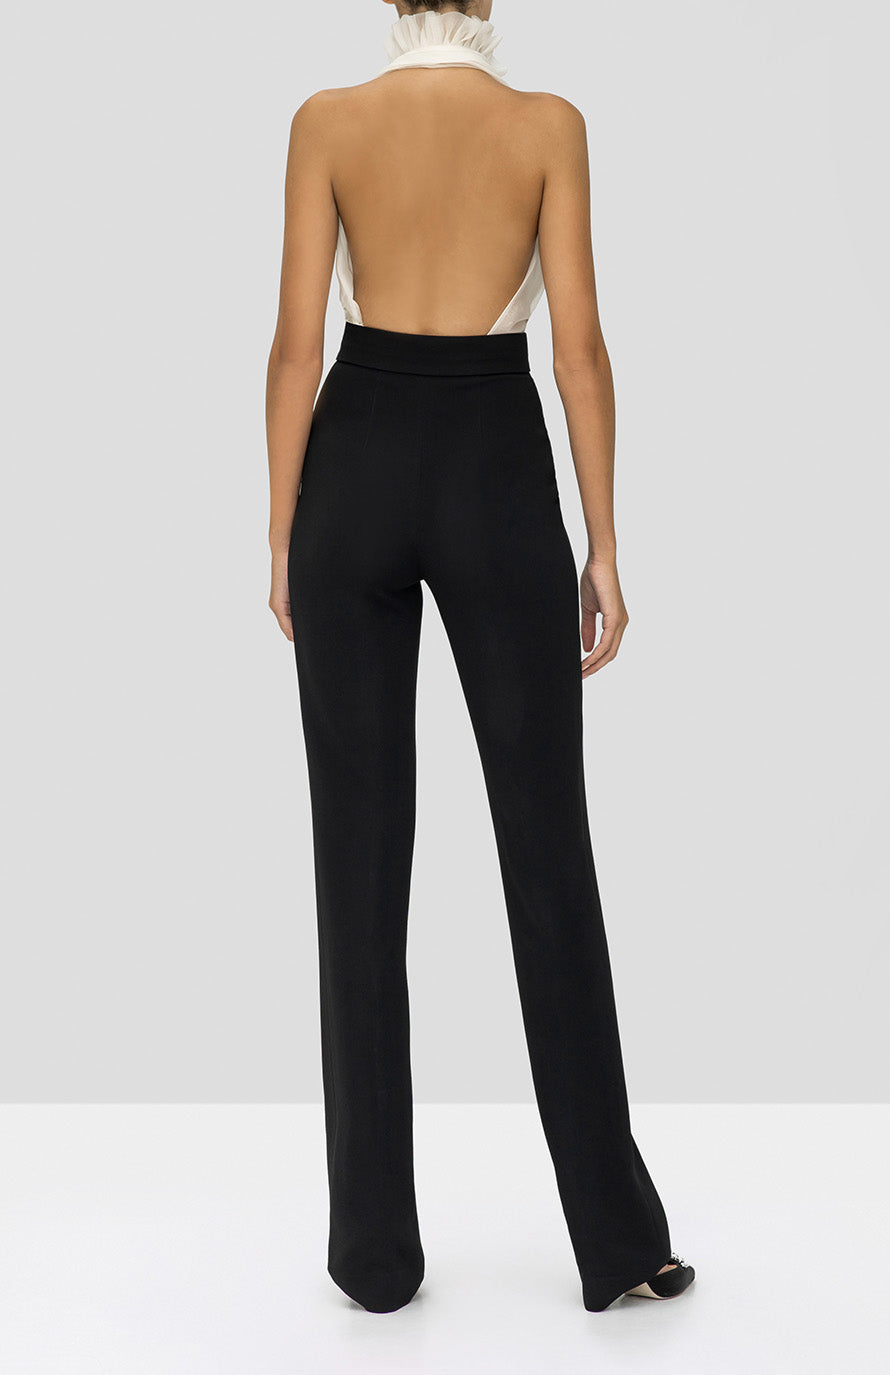 Alexis Arabel Top in Off White and Lofton Pant in Black from the Holiday 2019 Collection - Rear View